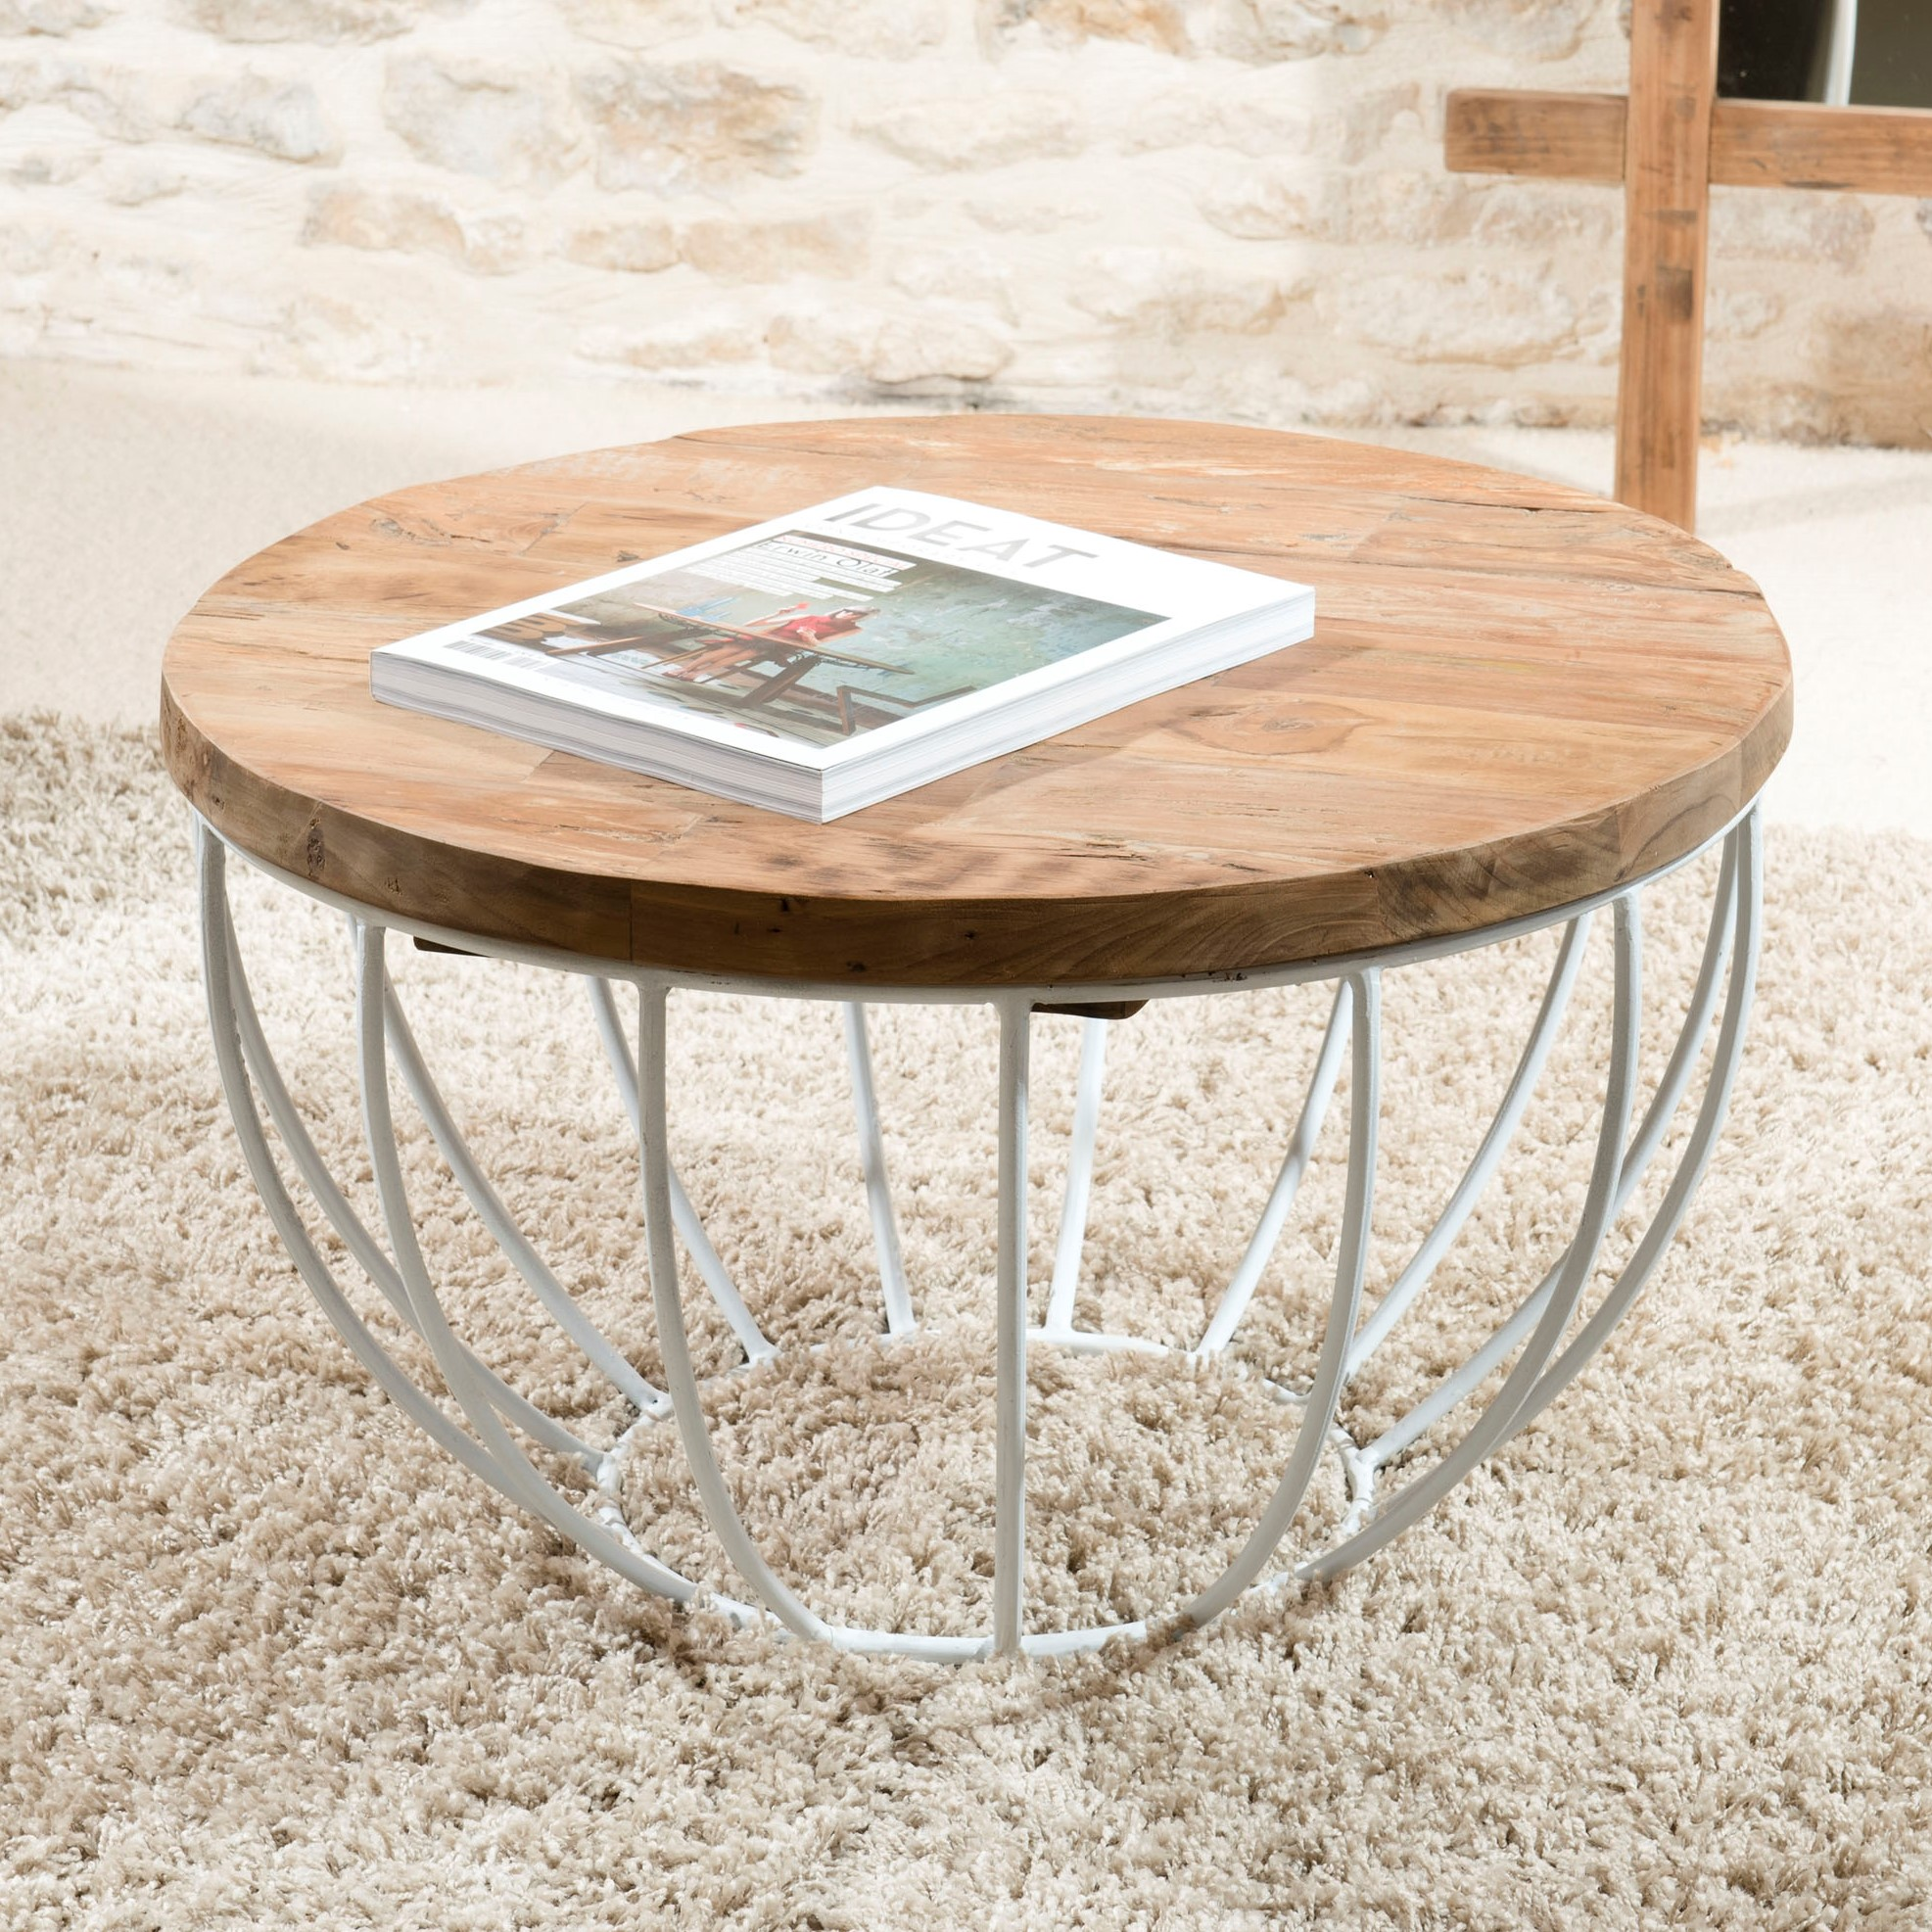 Petite Table Basse Ronde Teck Recycle Structure Filaire Blanche